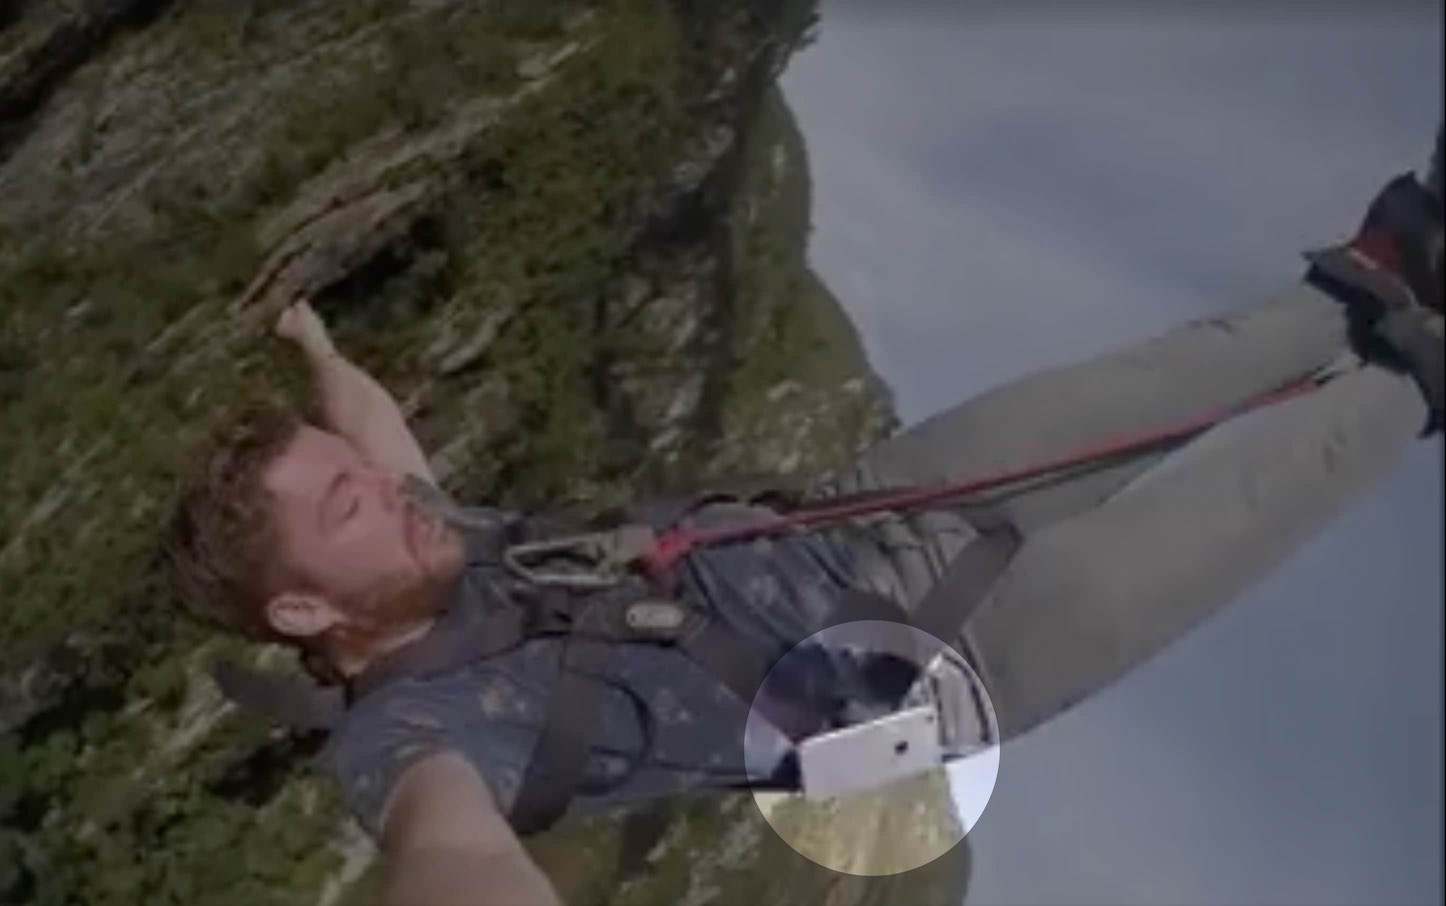 IPhone Falls out of Bungee